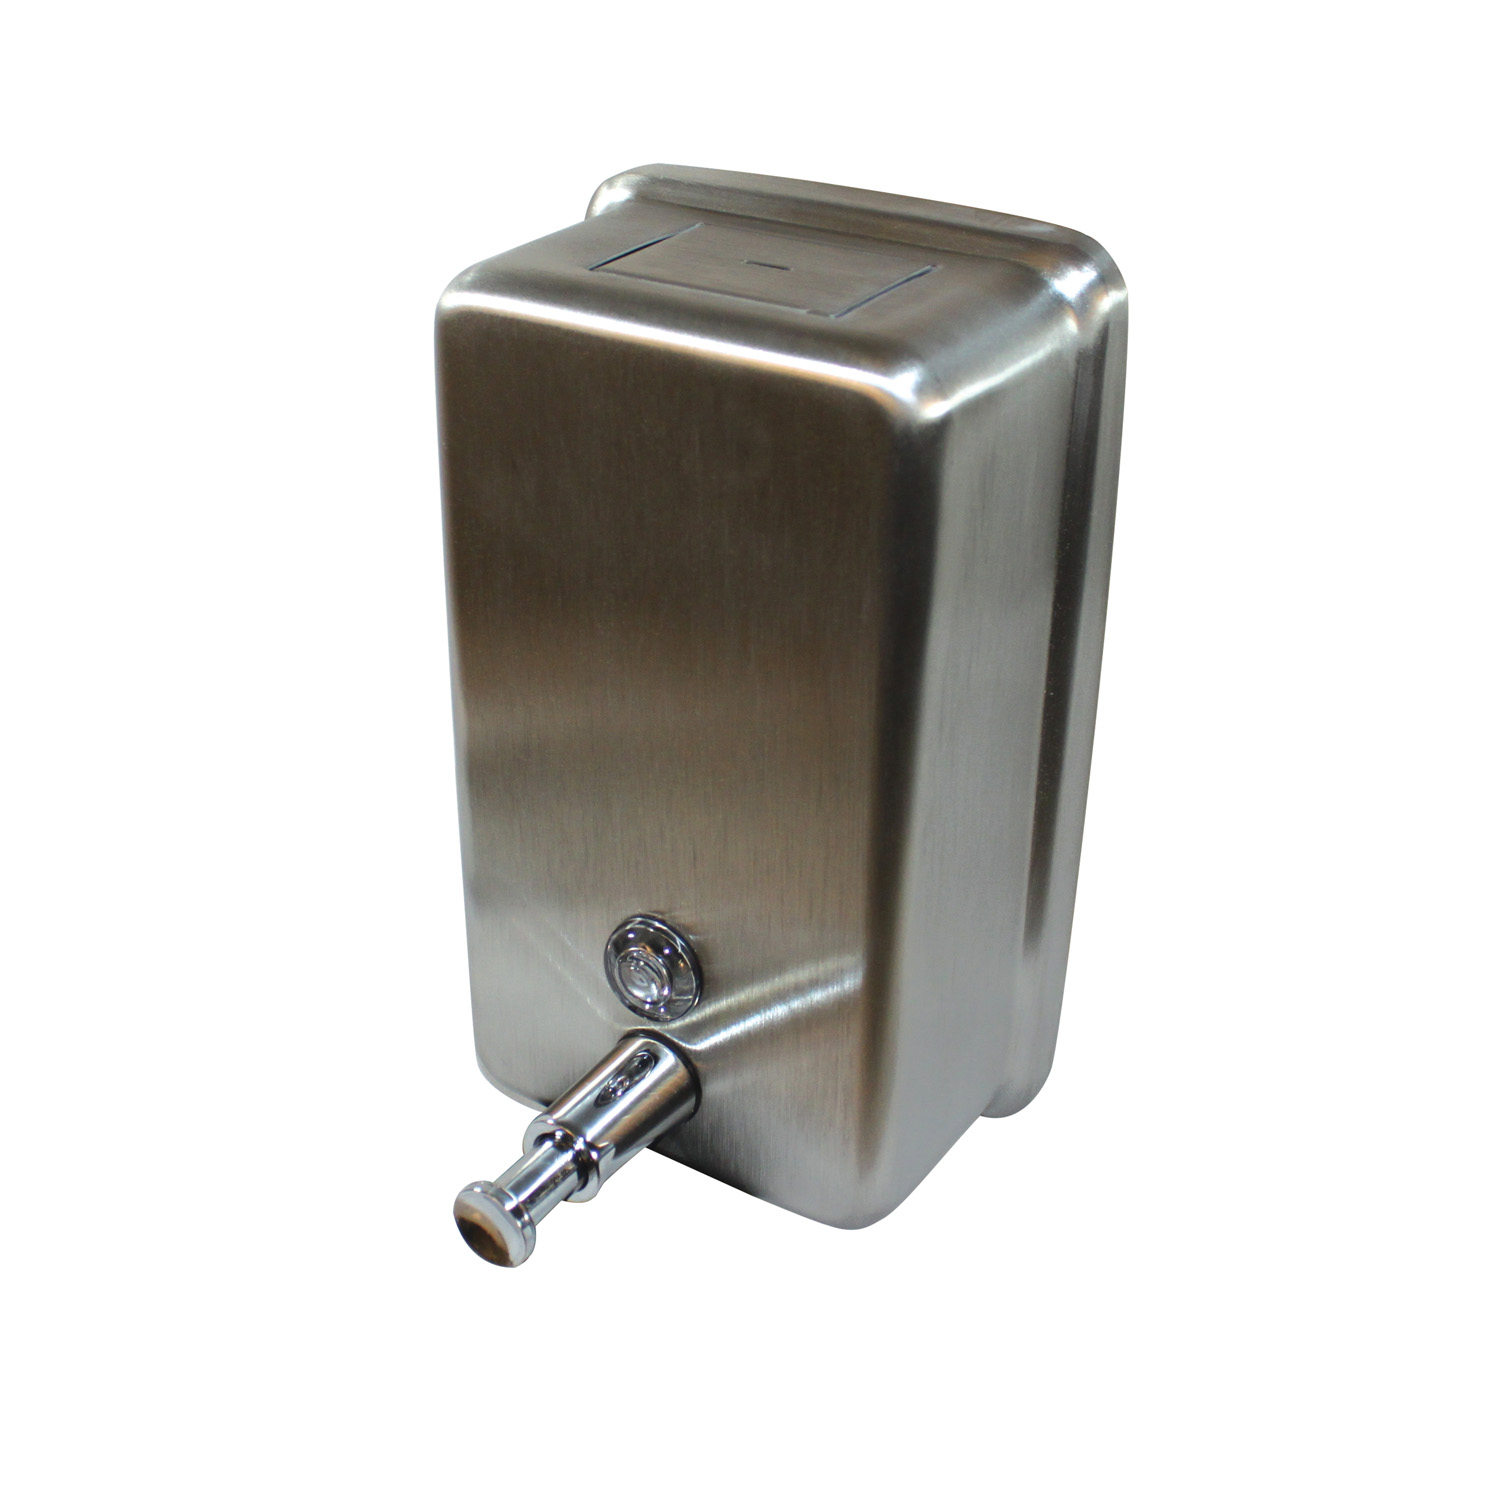 Impact Products 4040 hand soap / sanitizer dispenser